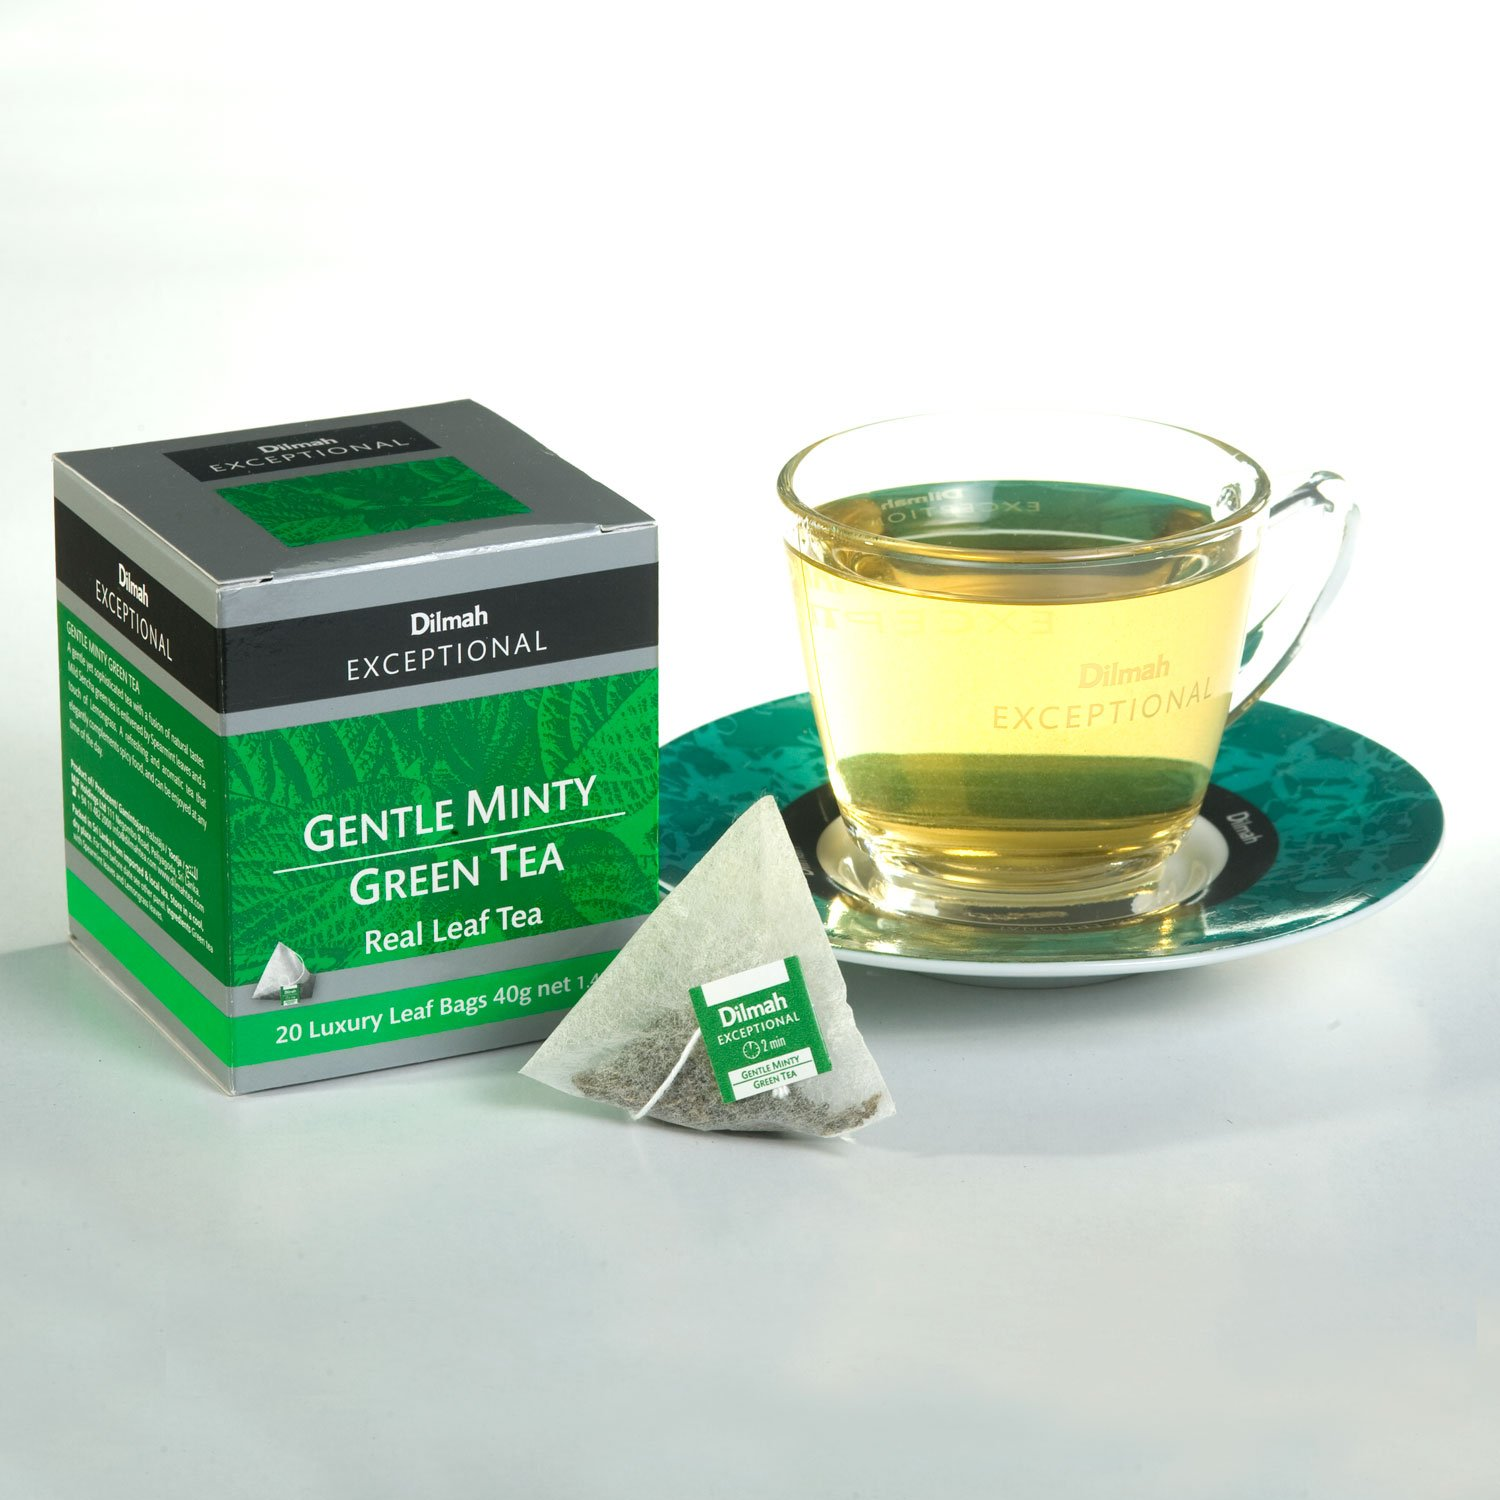 Dilmah exceptional gentle minty green tea box luxury leaf string and dilmah exceptional gentle minty green tea box luxury leaf string and tag tea bags 40 g pack of 6 20 bags each amazon grocery izmirmasajfo Images